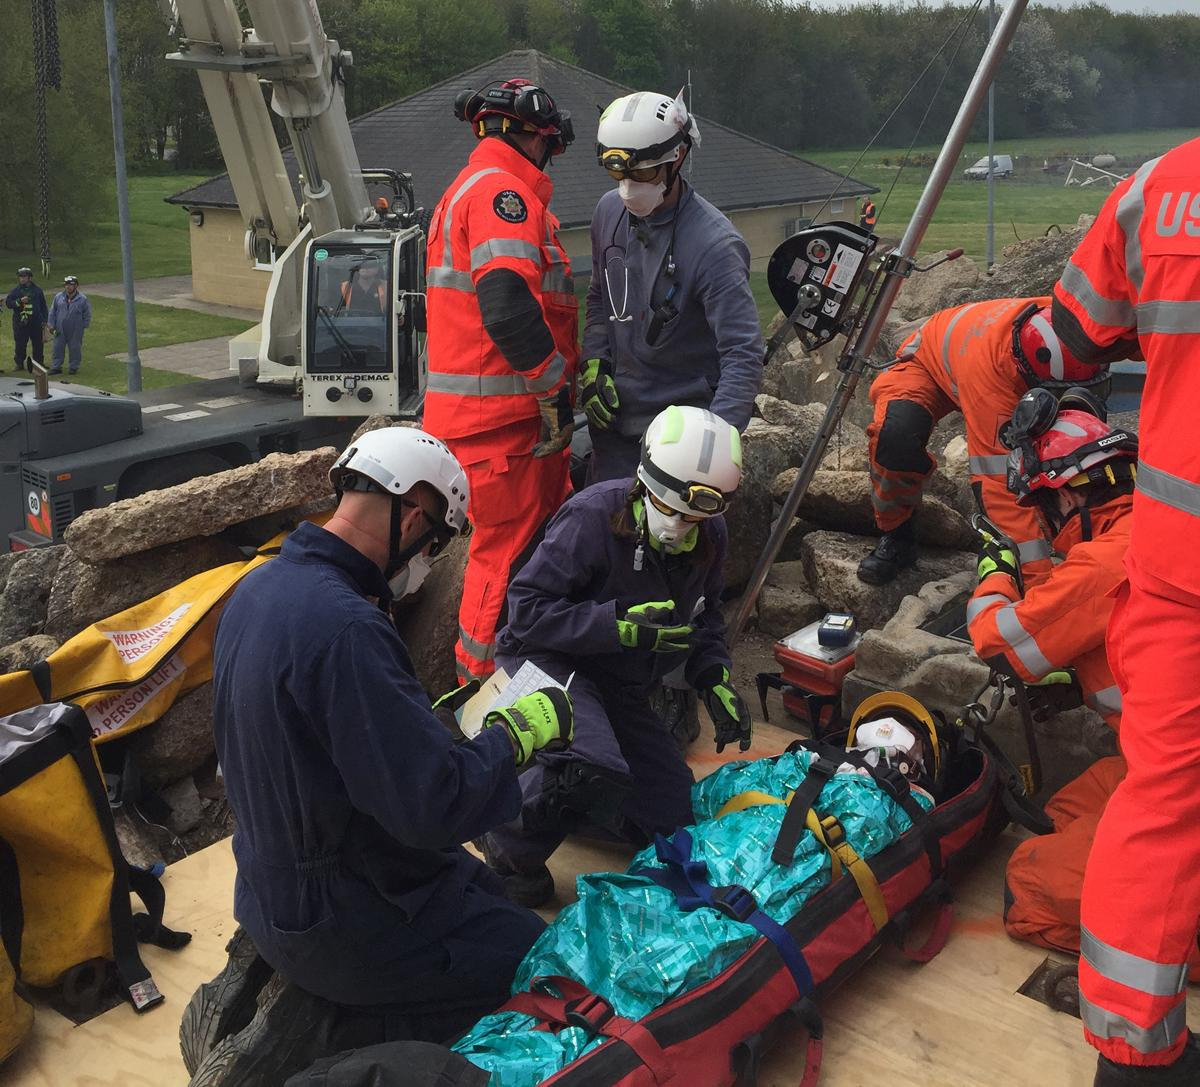 The course has been specially created for the emergency services, incorporating specific equipment to make it functional